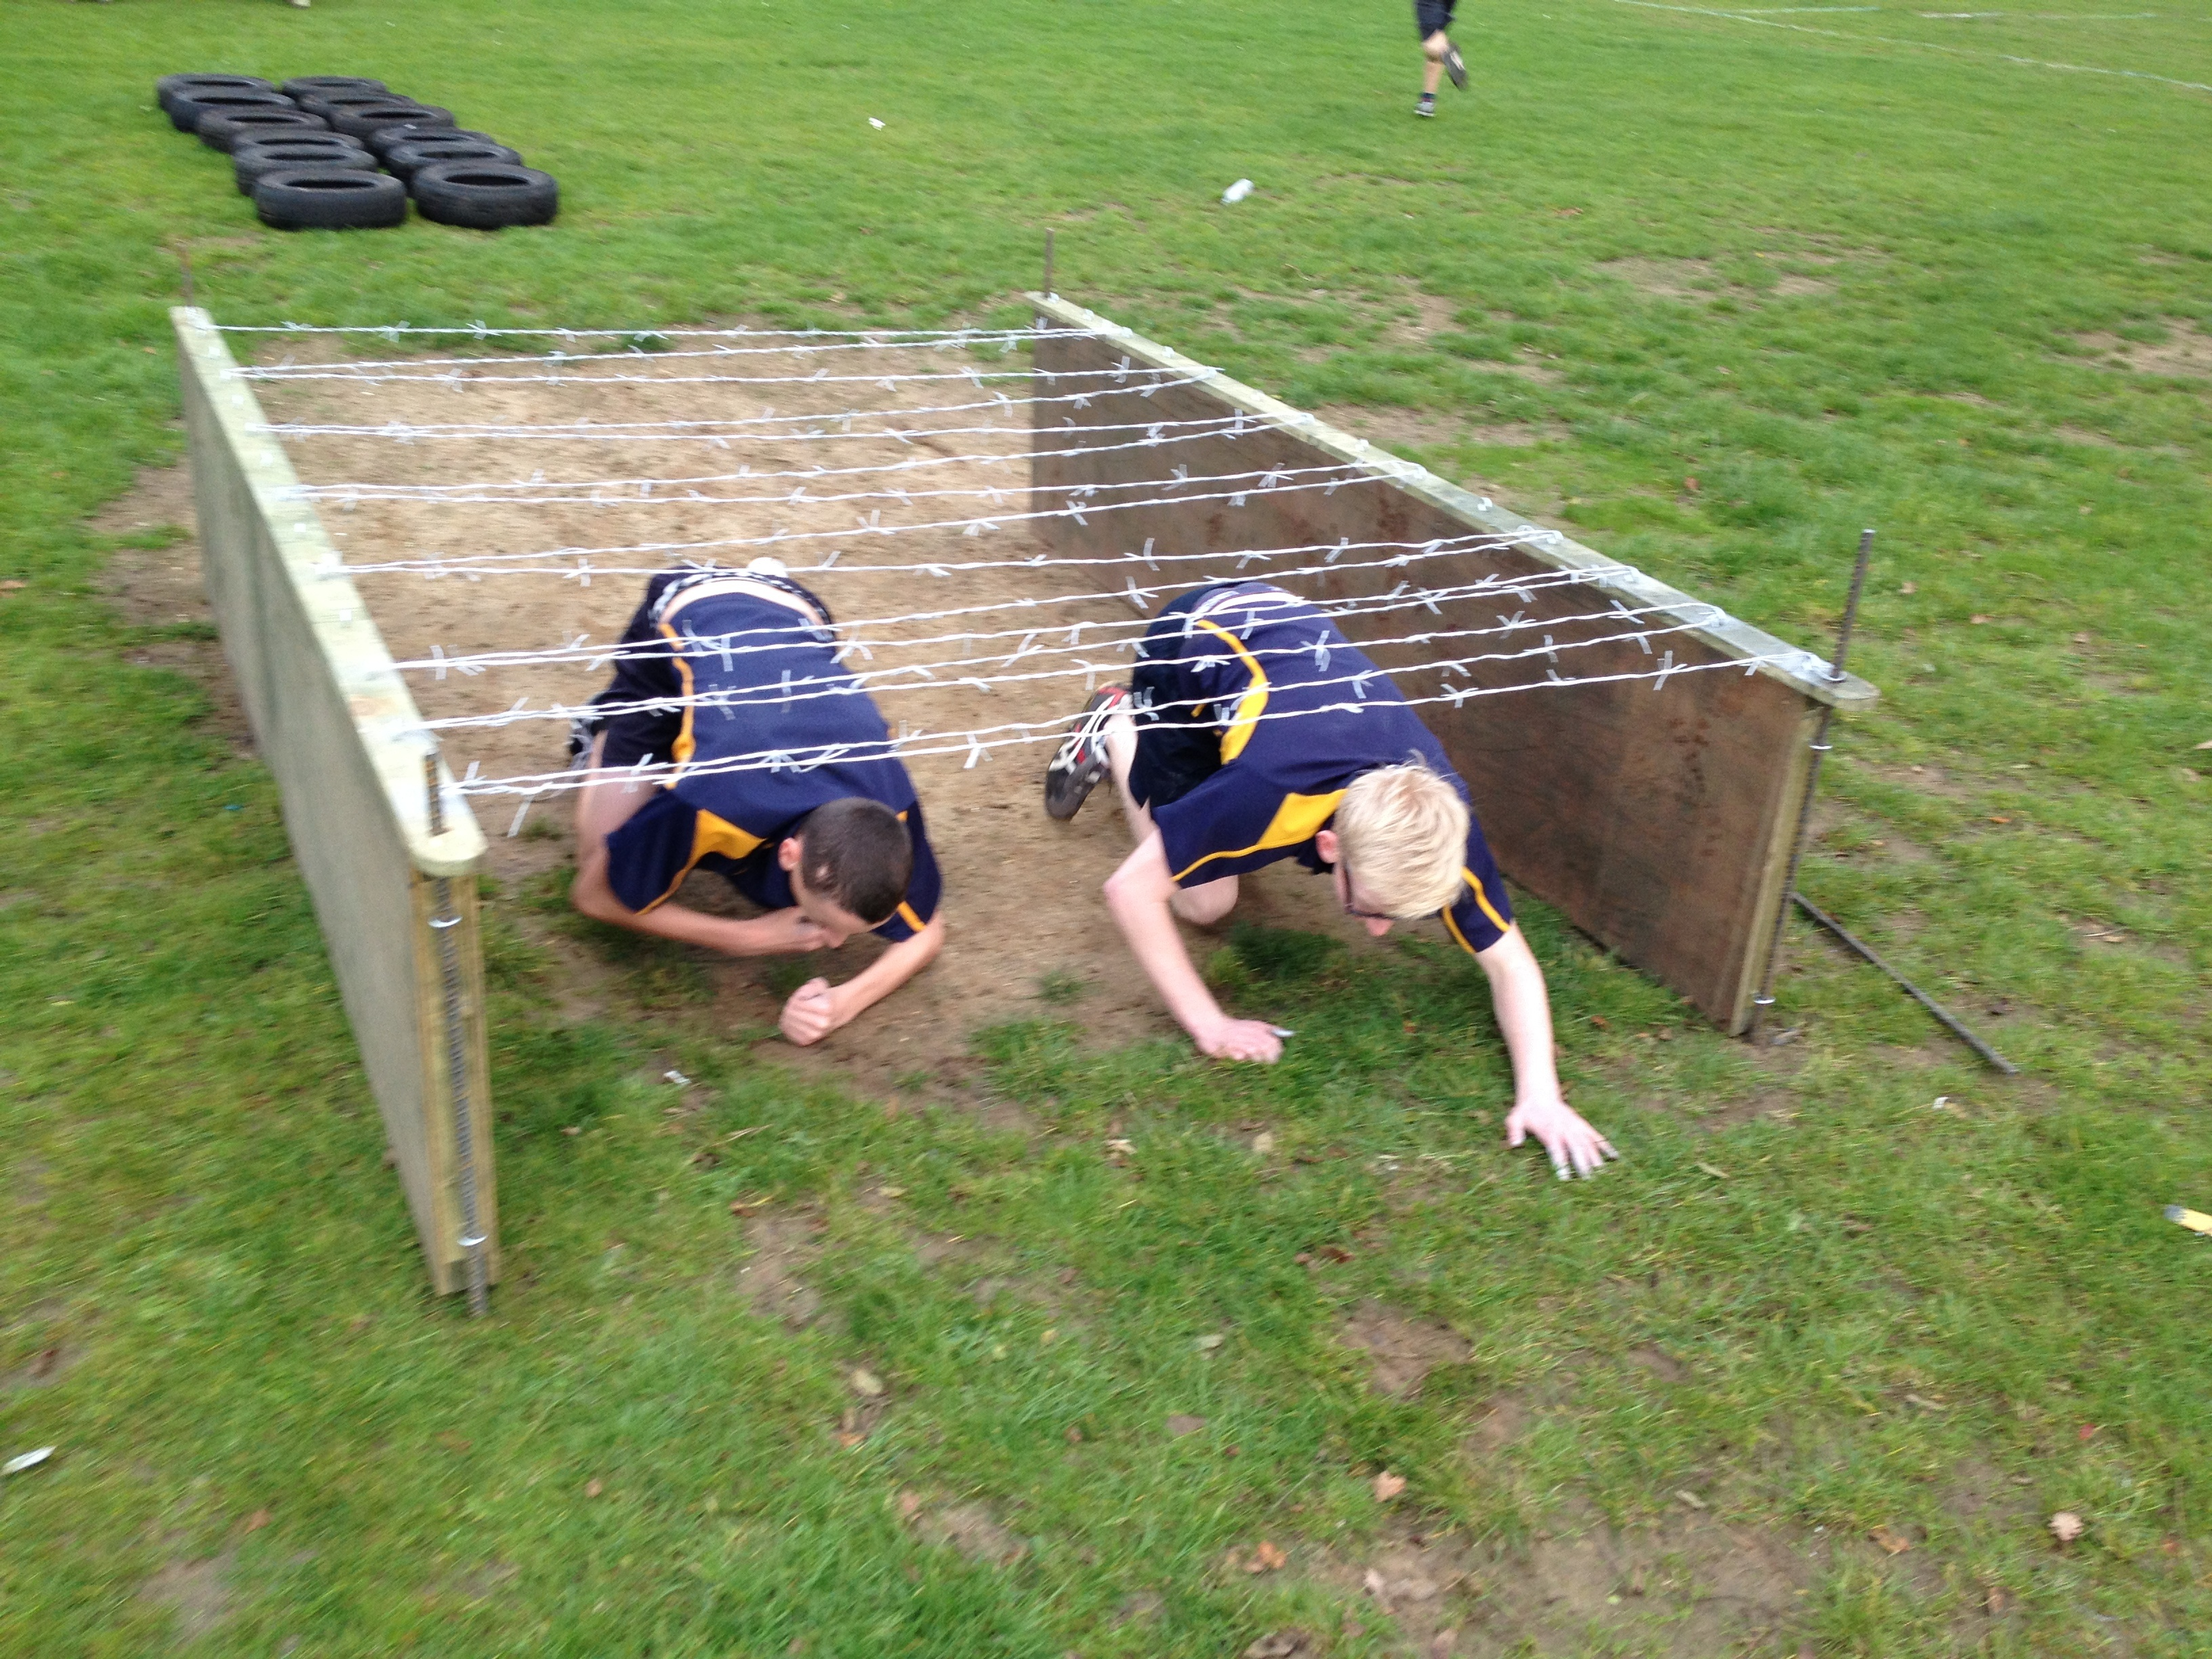 Children In An Obstacle Course